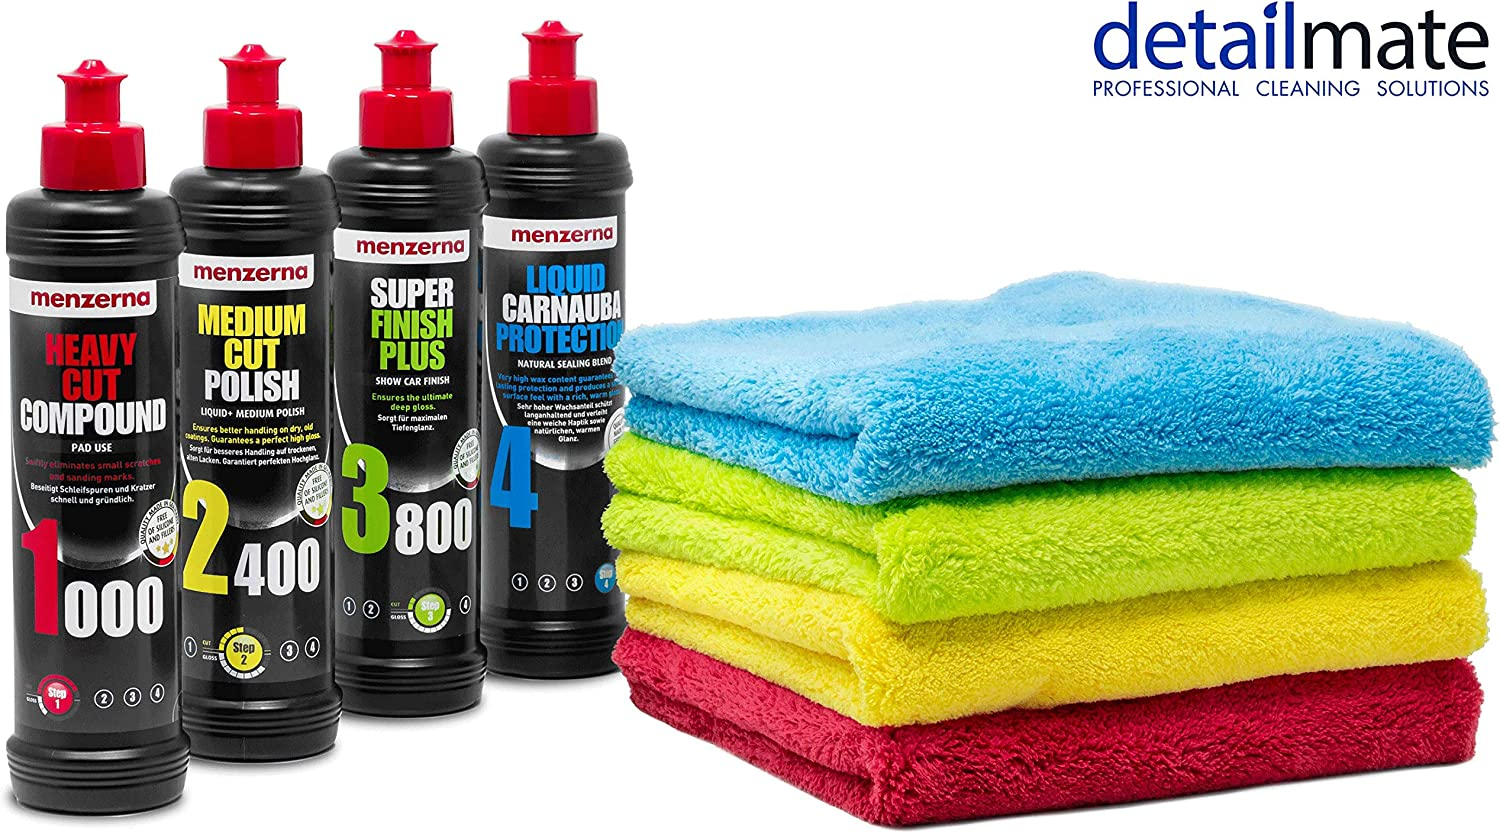 Detailmate Menzerna Autopolitur Super Heavy Cut Compund Hc1000 Medium Cut 2400 Super Finish Plus Sfp3800 Liquid Carnauba Protection 250ml 4 Flauschige Poliertücher Rot Gelb Grün Blau Auto